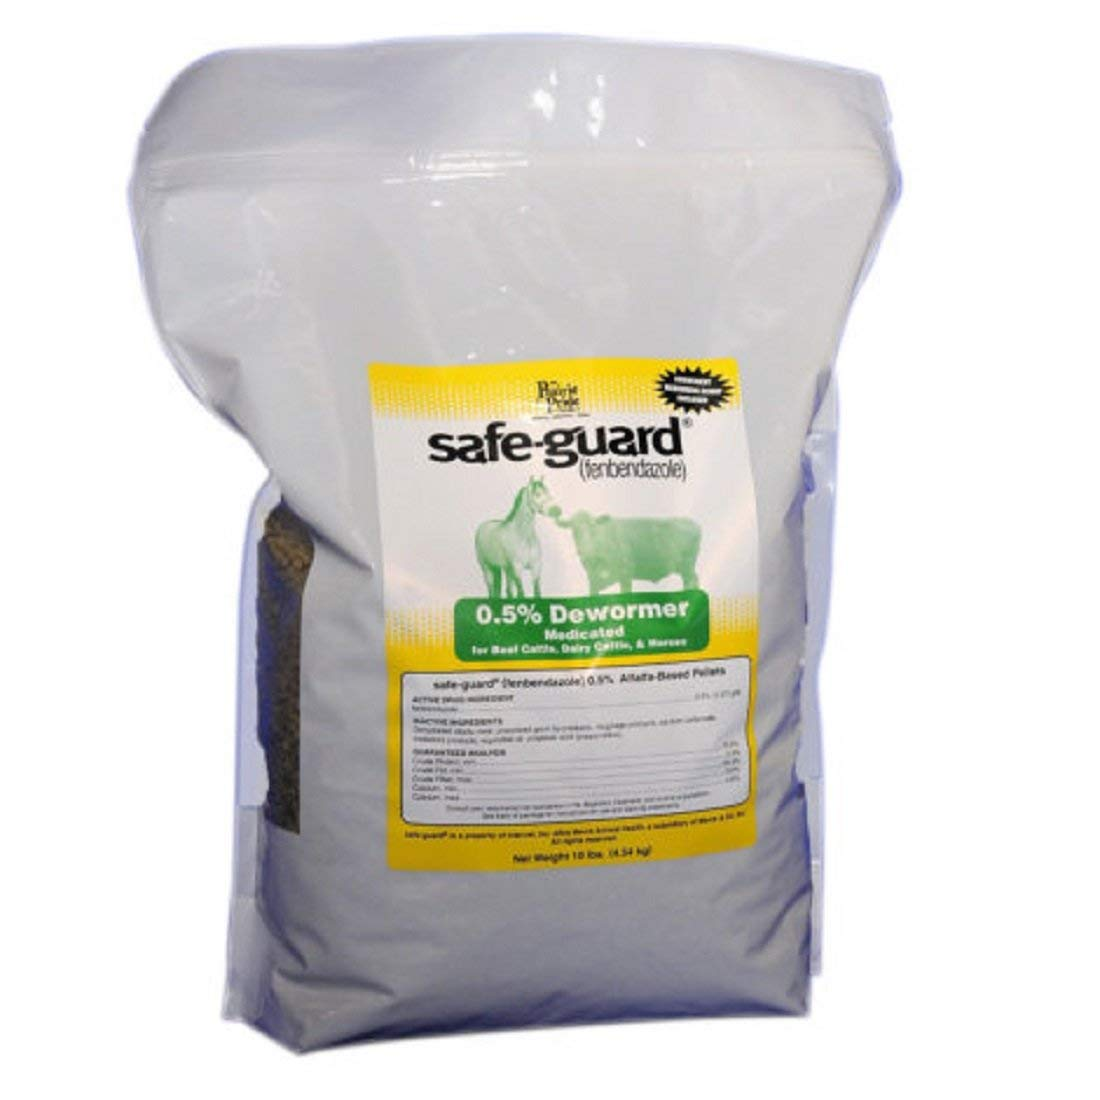 PRAIRIE PRIDE Medicated Dewormer for Farm Livestock - Pelleted alfalfa-based, contains 0.5% safe-guard - 10 LB